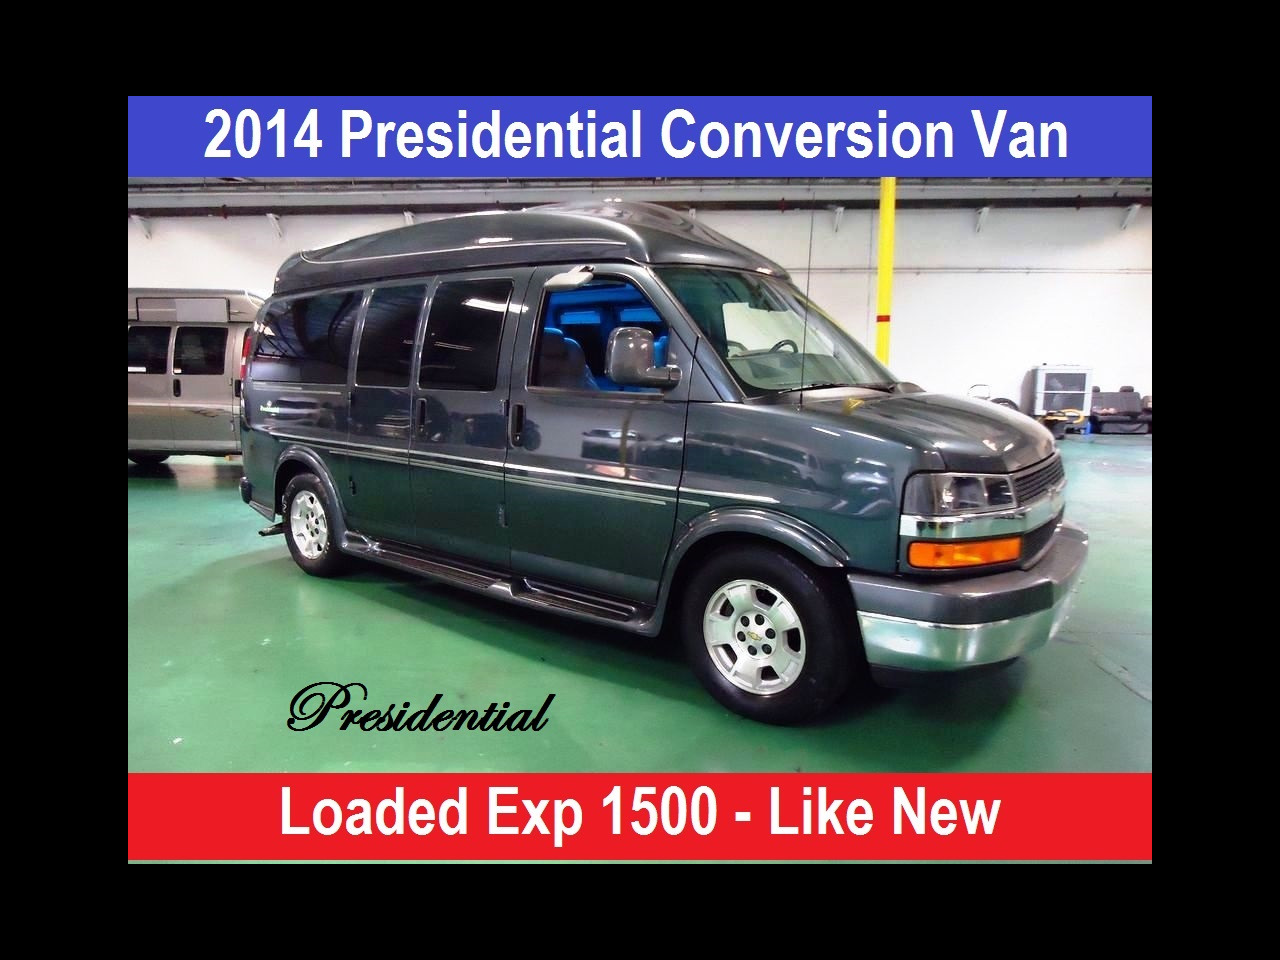 2014 Chevrolet Conversion Van Presidential Conversion Van